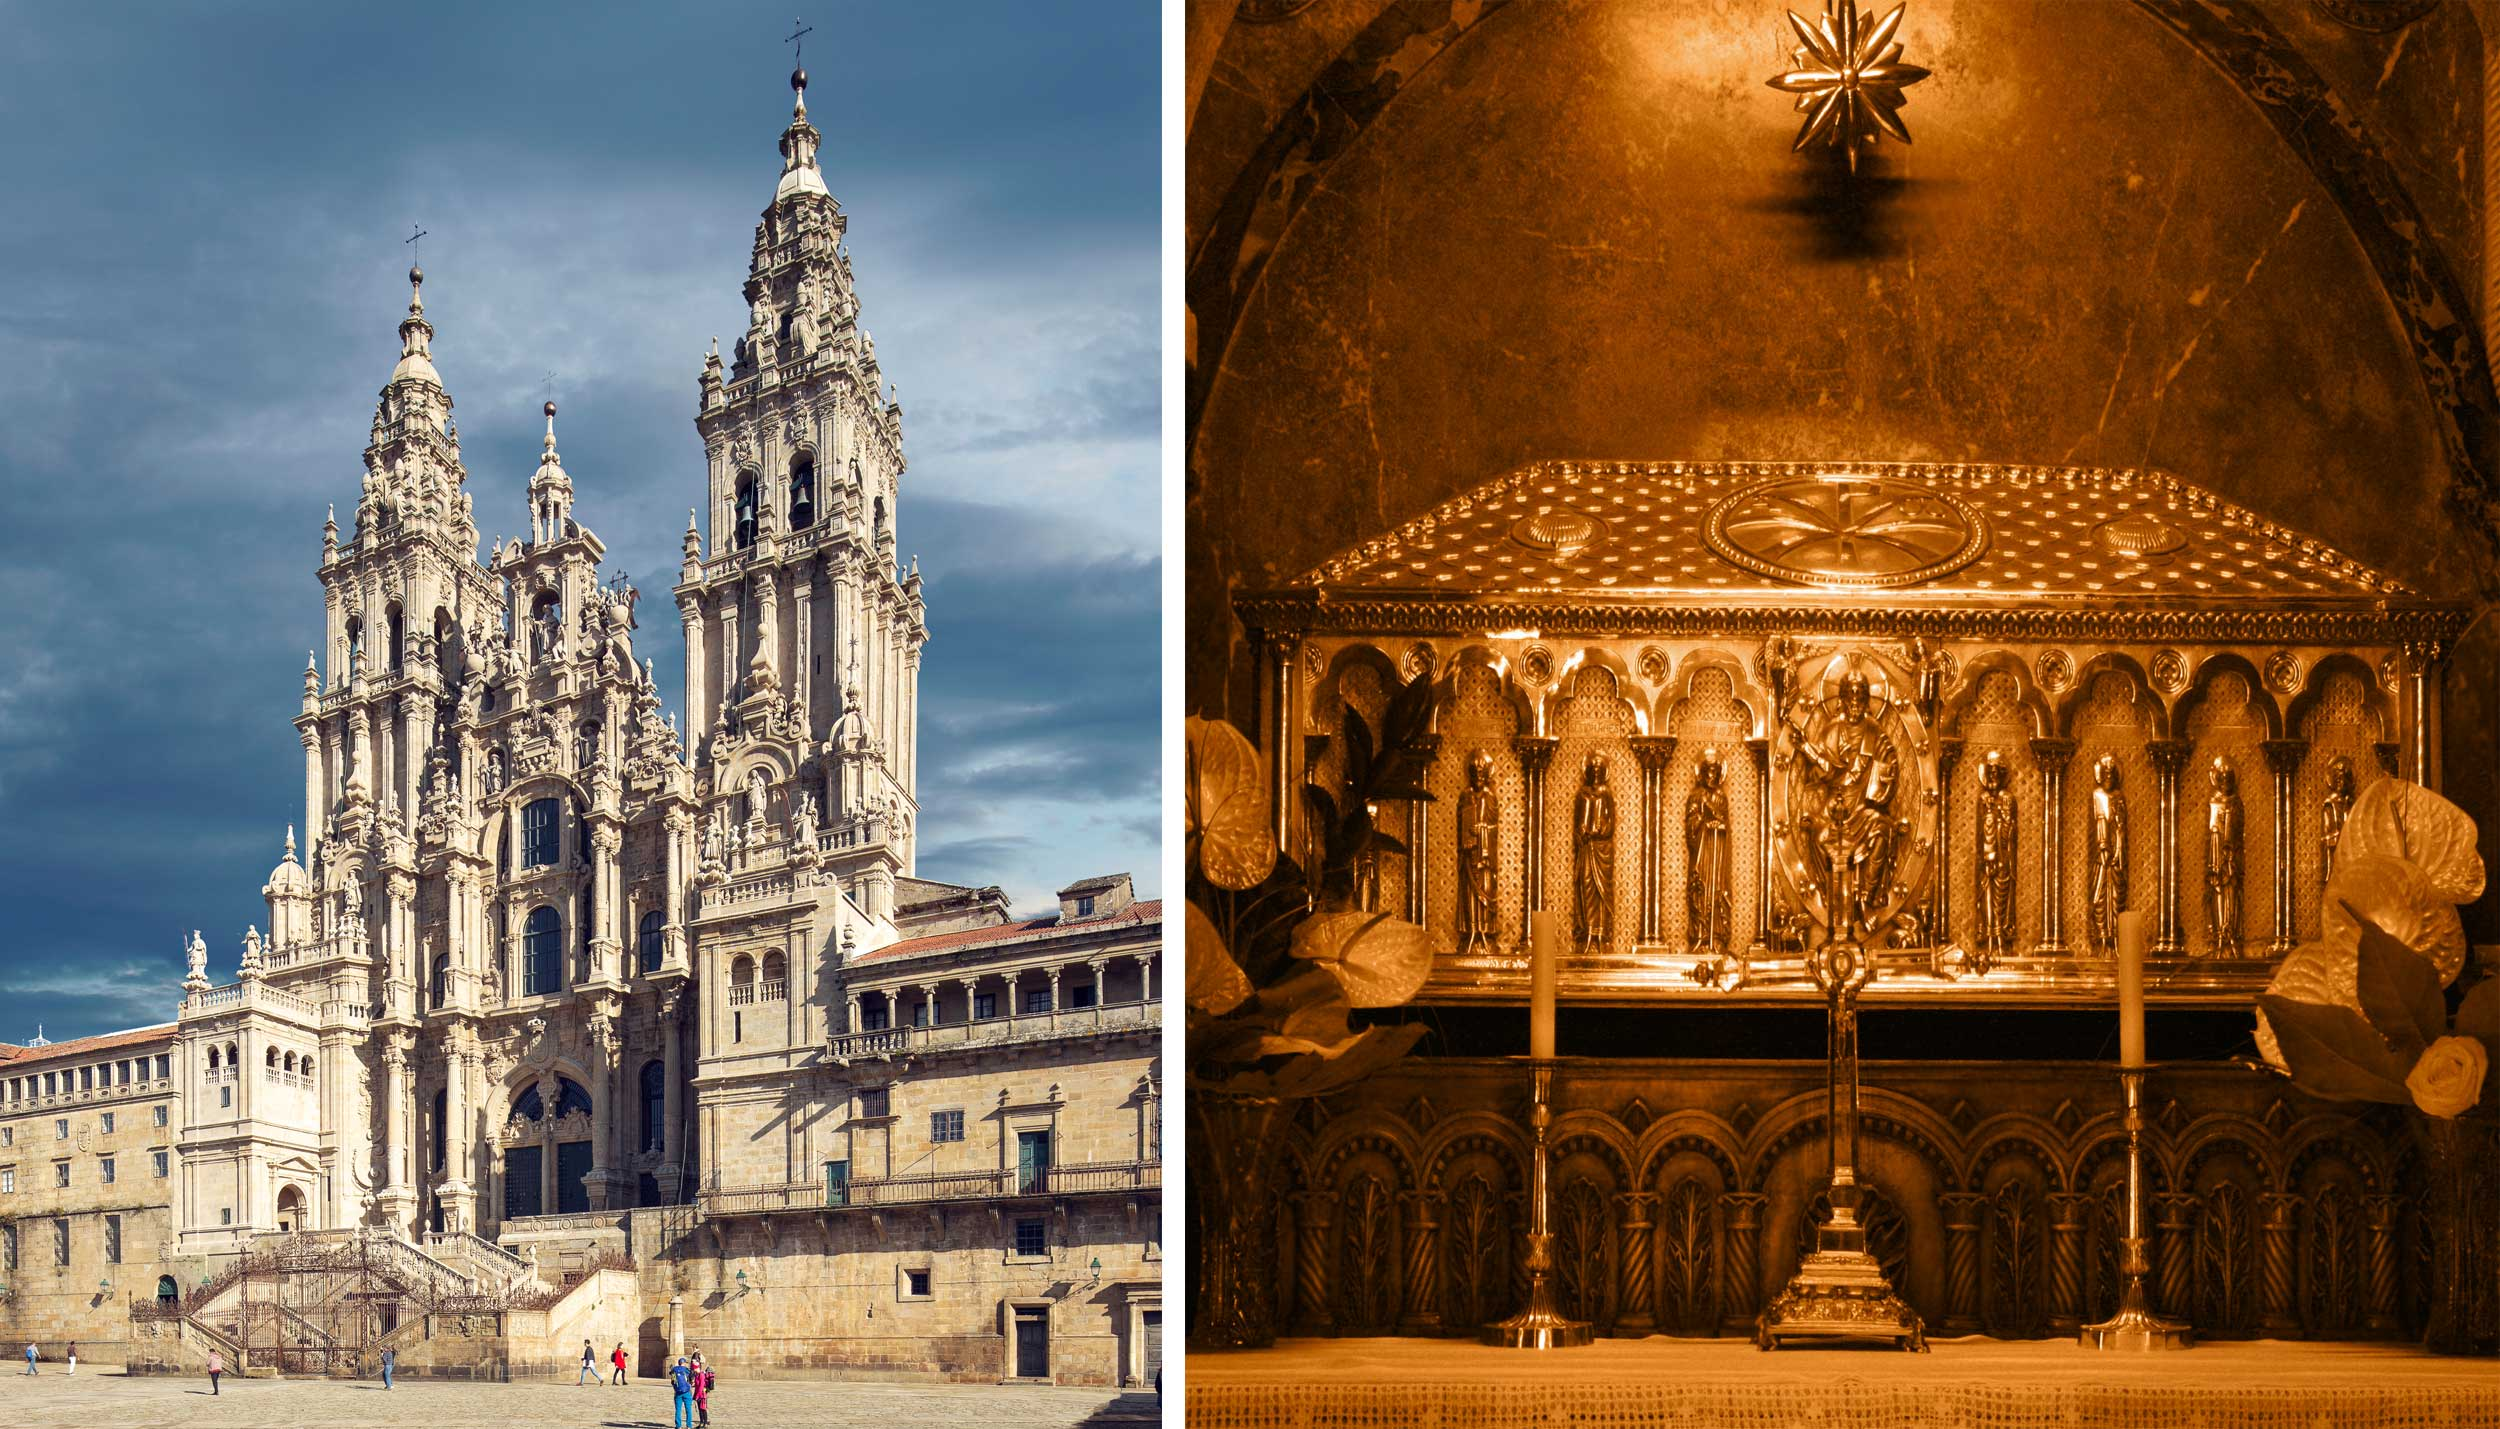 Collage of a cathedral and a coffin gilded in gold, Spain